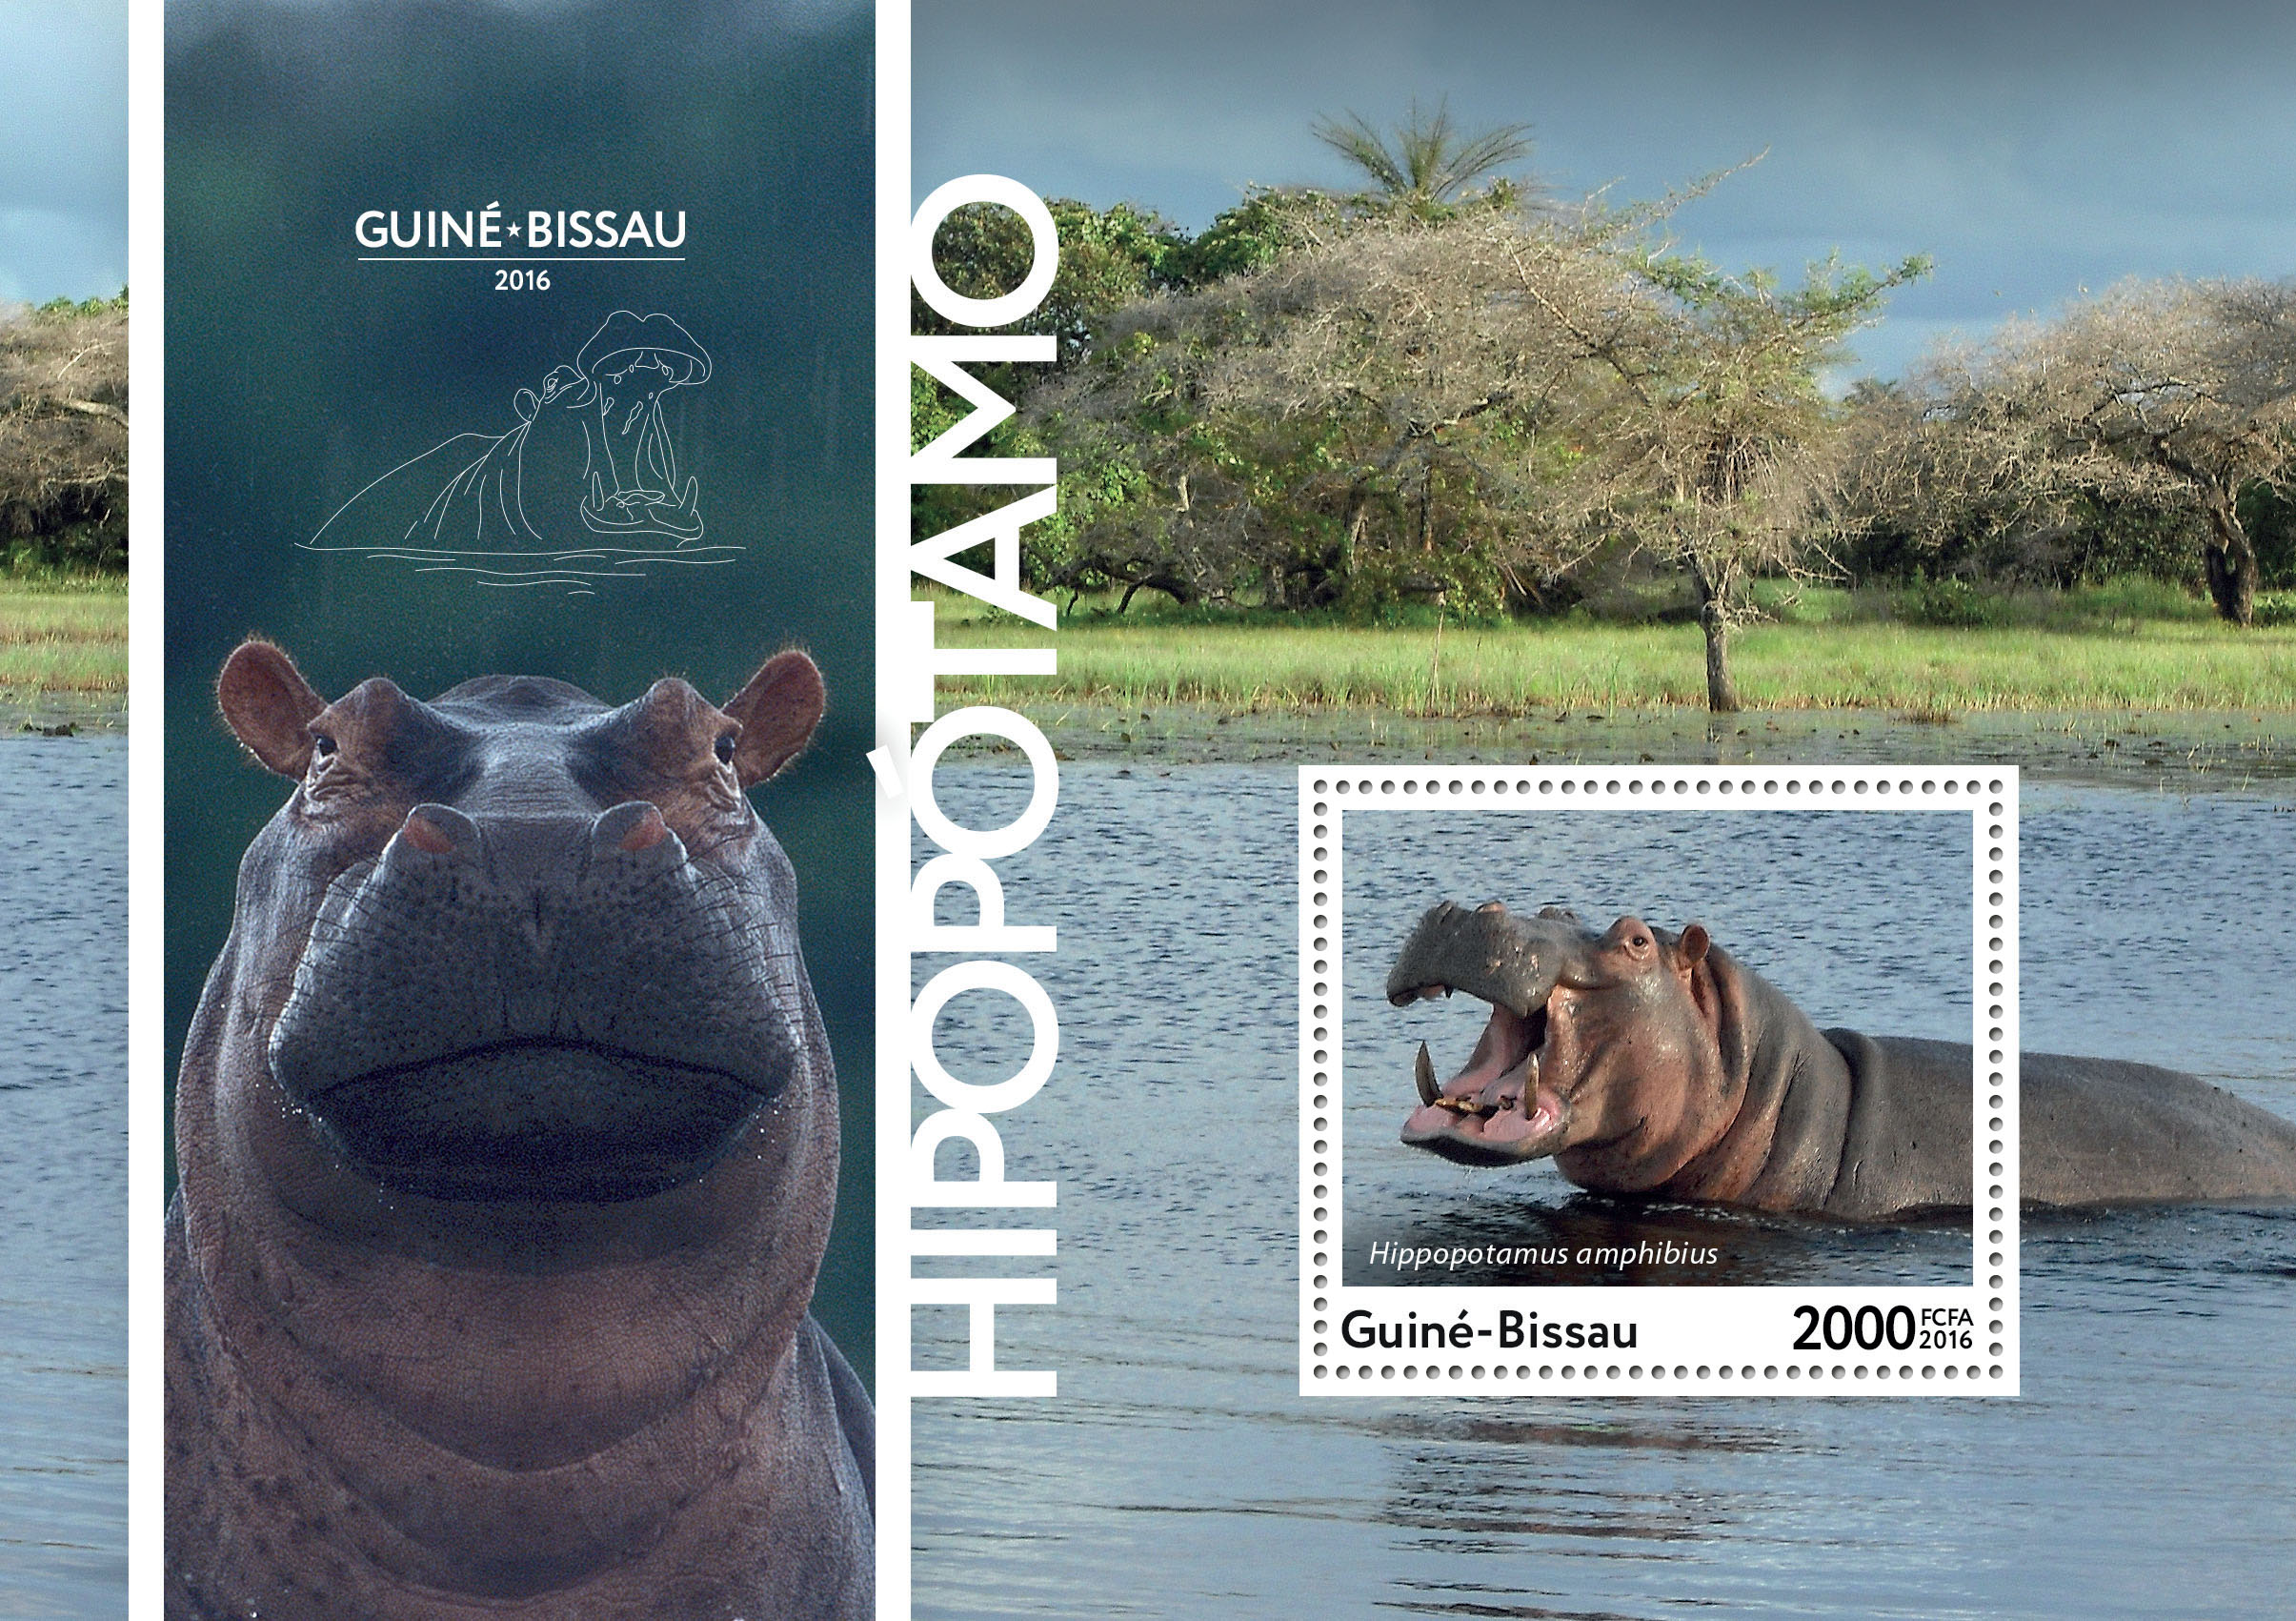 Hippopotamus s/s - Issue of Guinée-Bissau postage stamps